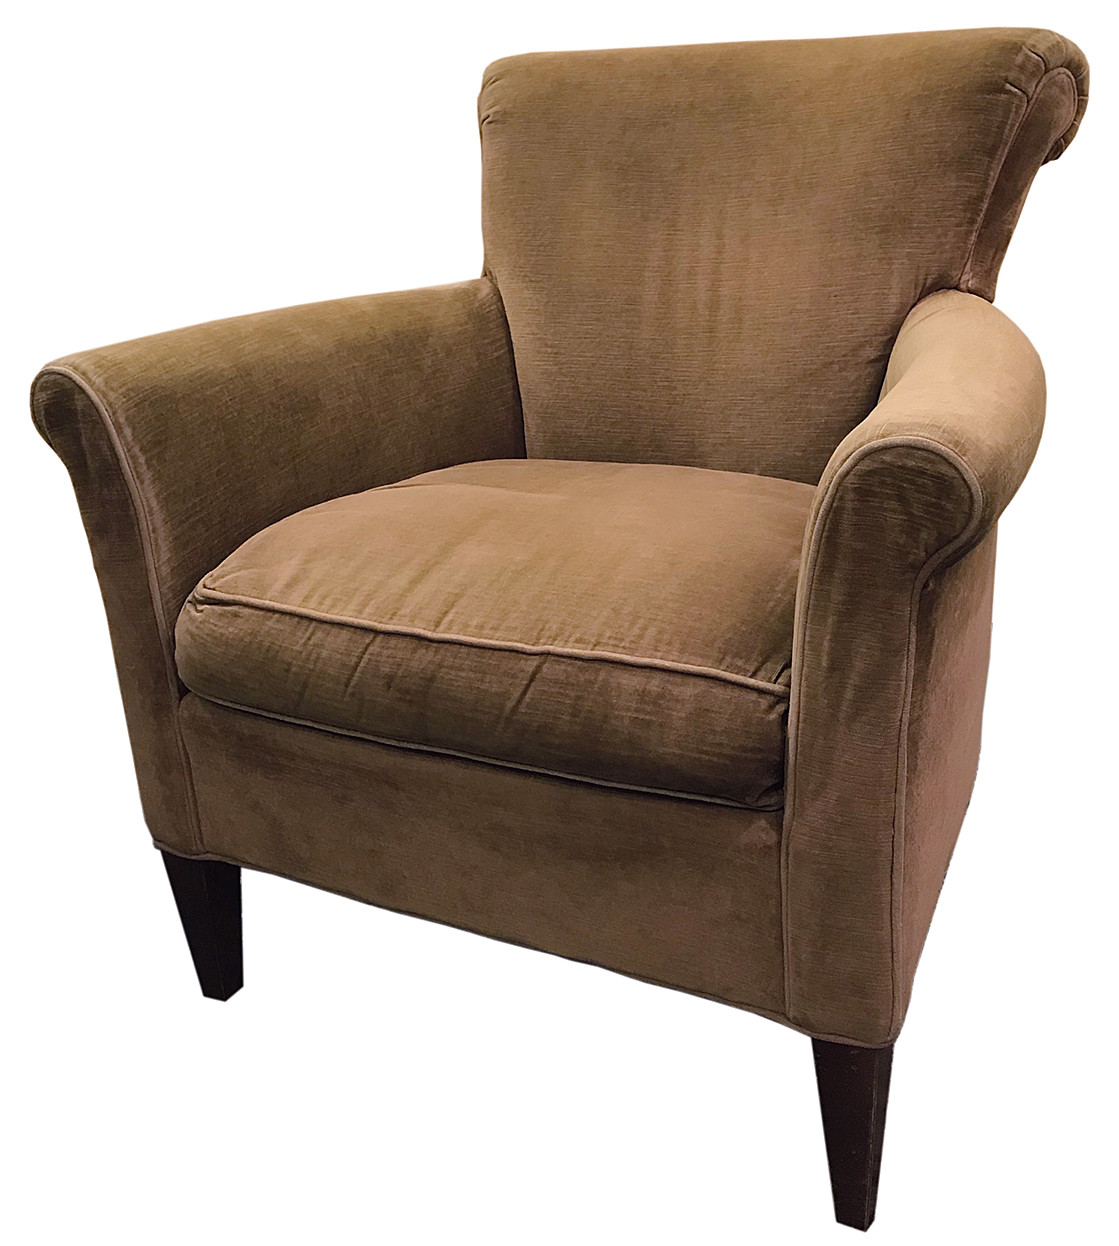 Crate & Barrel Velvet Club Chair